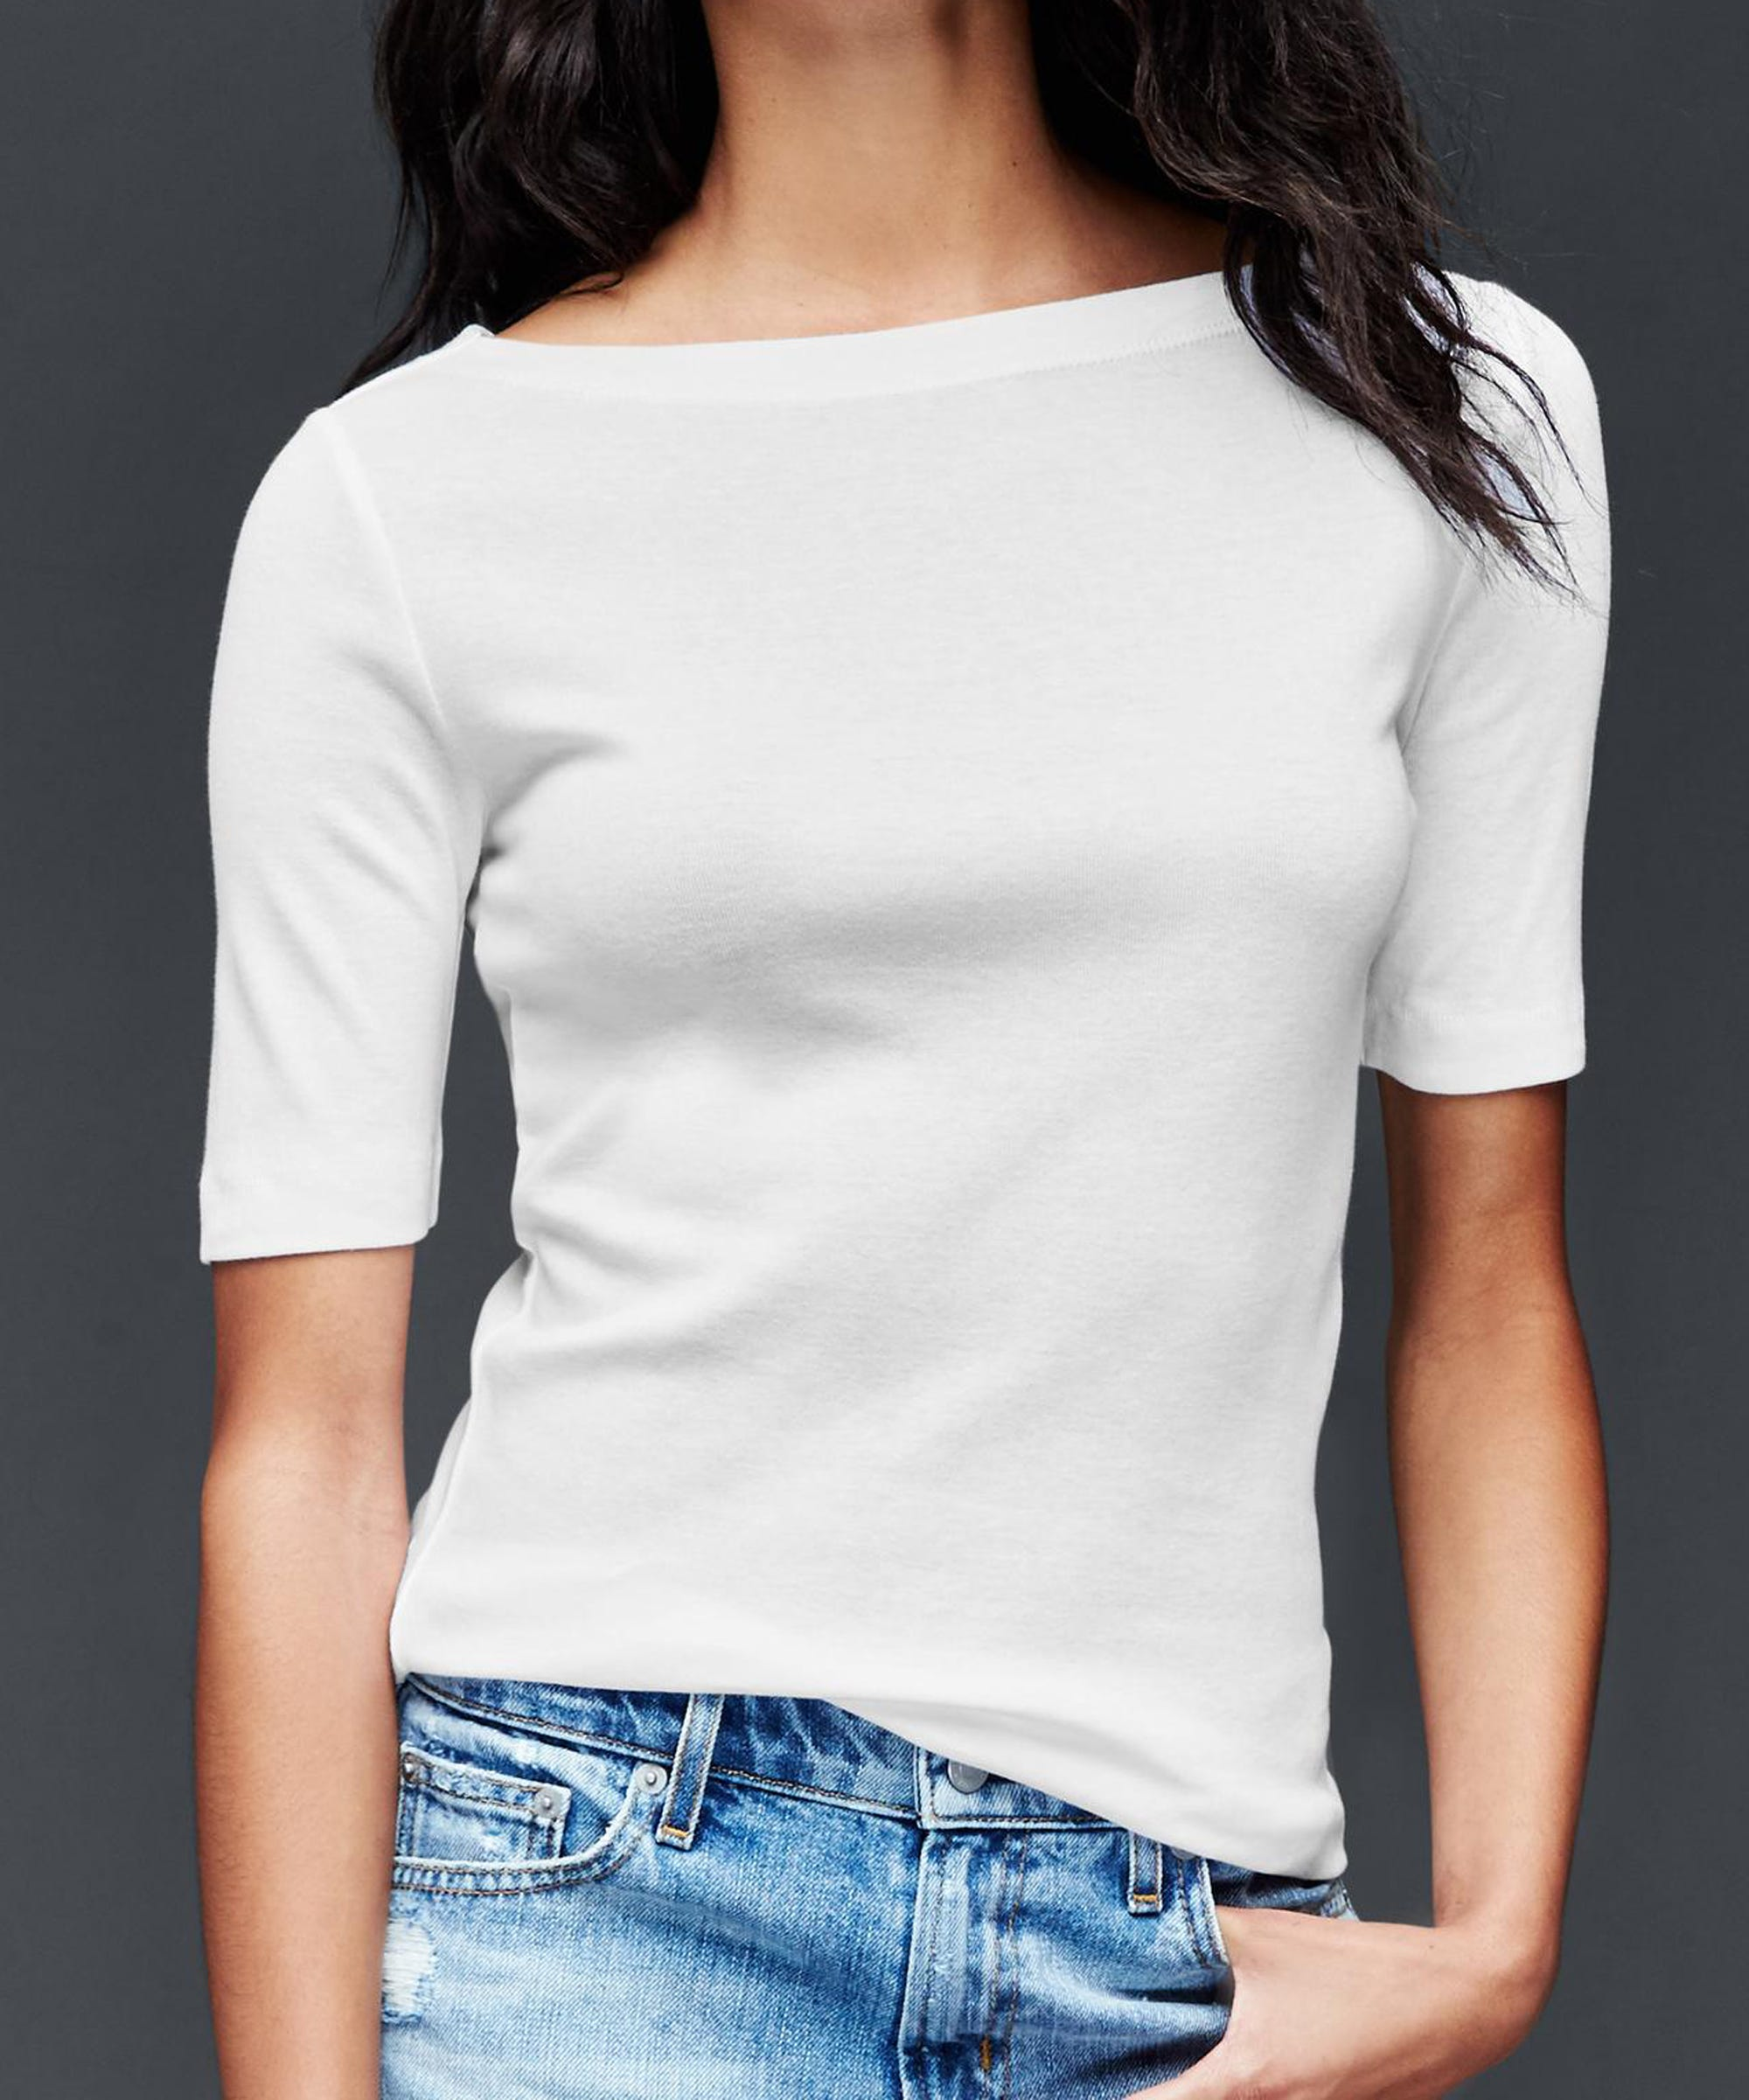 89a3564e157 Tested & Approved: The Best White Tees That Aren't See-Through At All